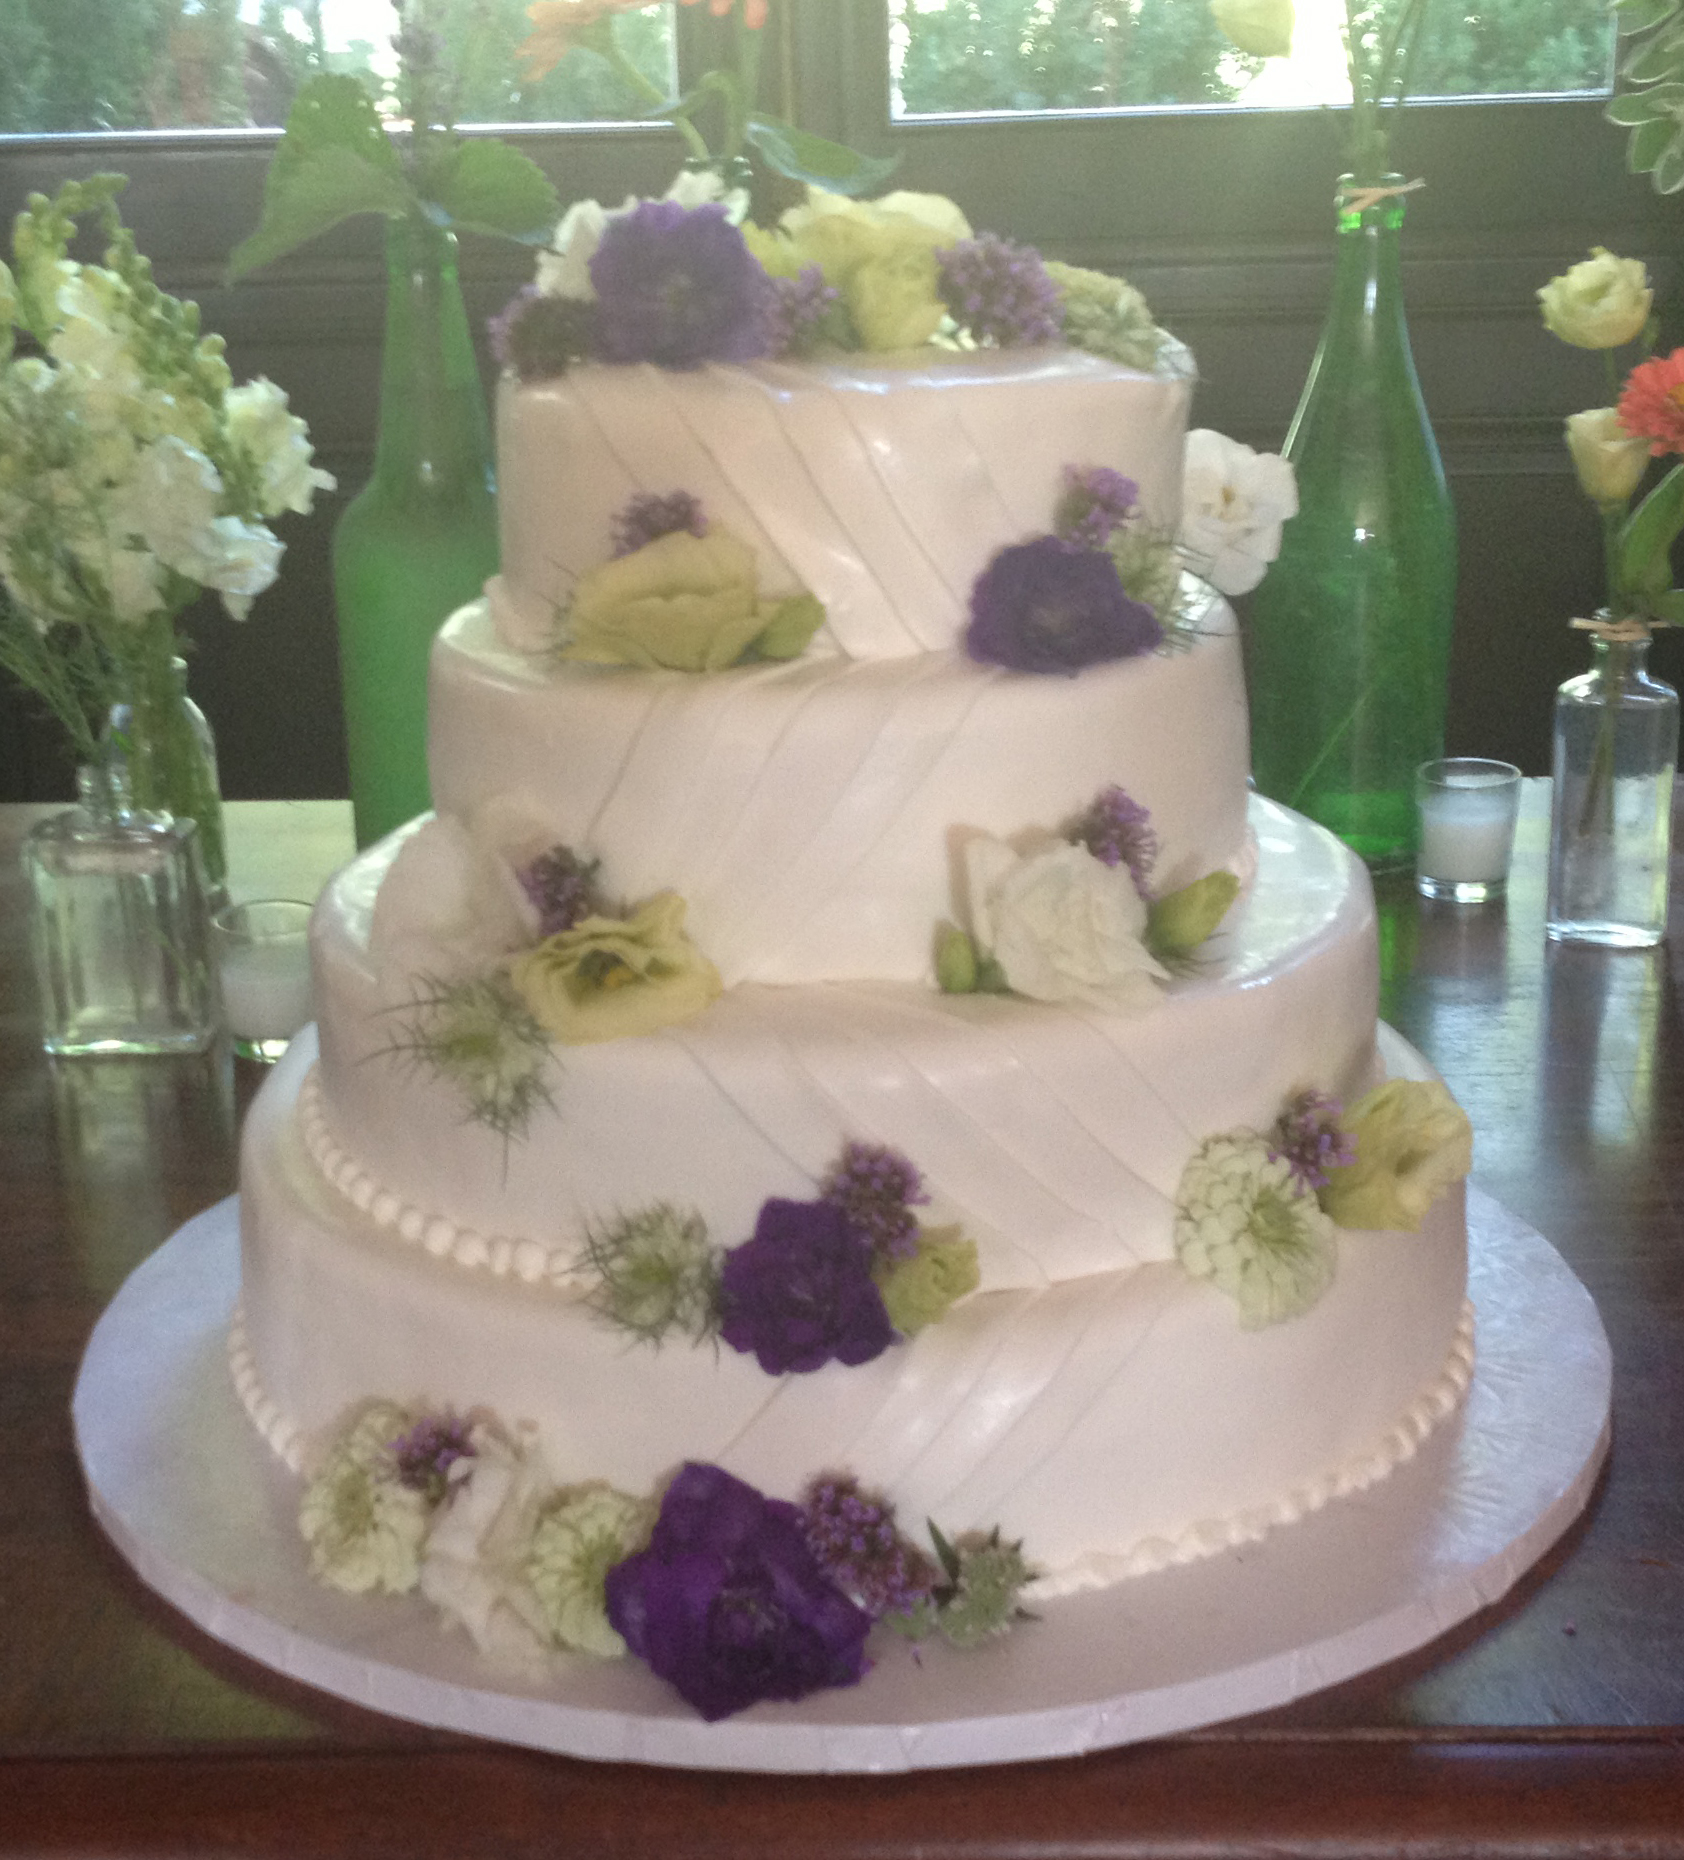 Rolled Fondant with Pleated Drapes